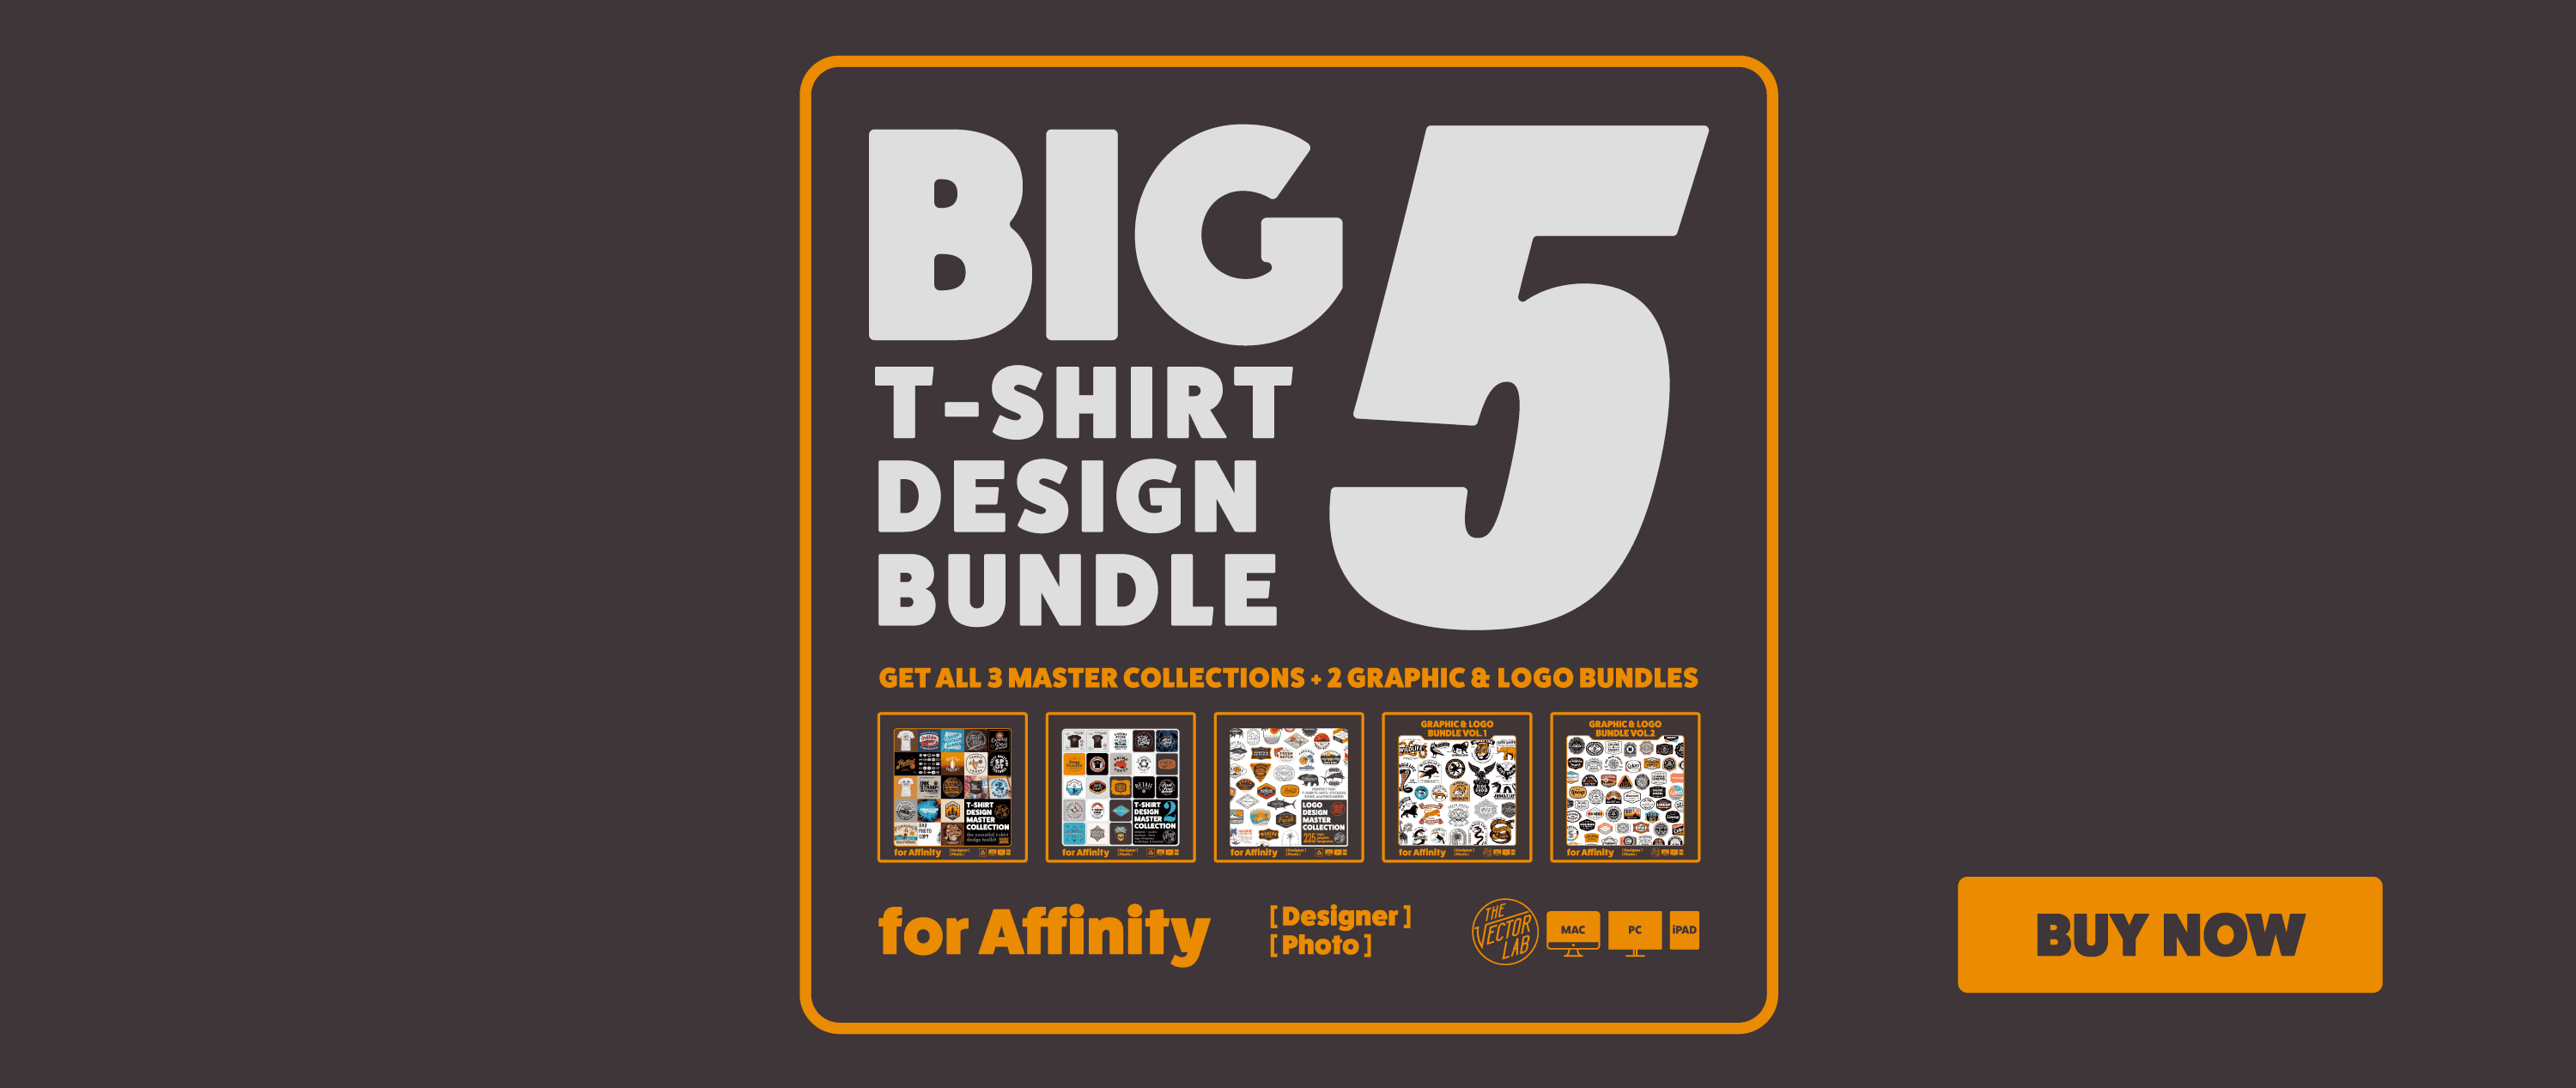 The Big 5 T-Shirt Design Bundle - Affinity